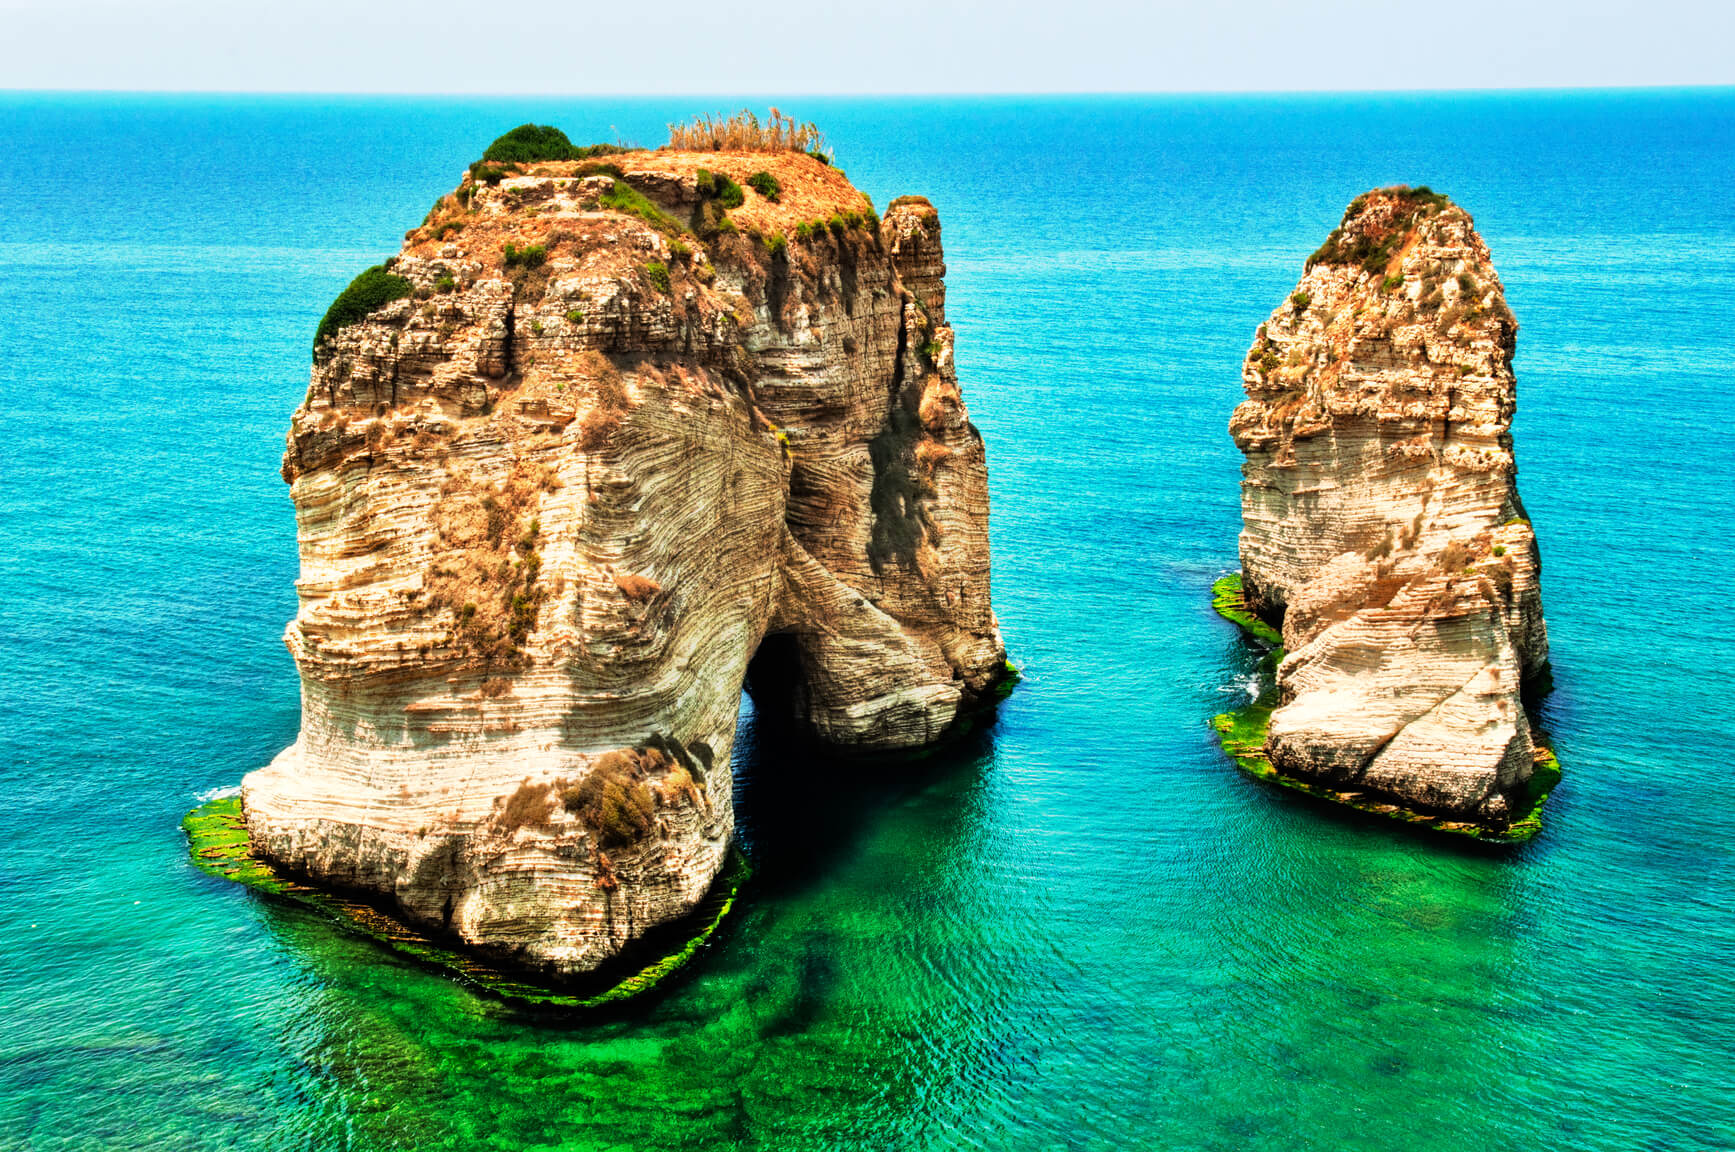 Lyon, France to Beirut, Lebanon for only €134 roundtrip